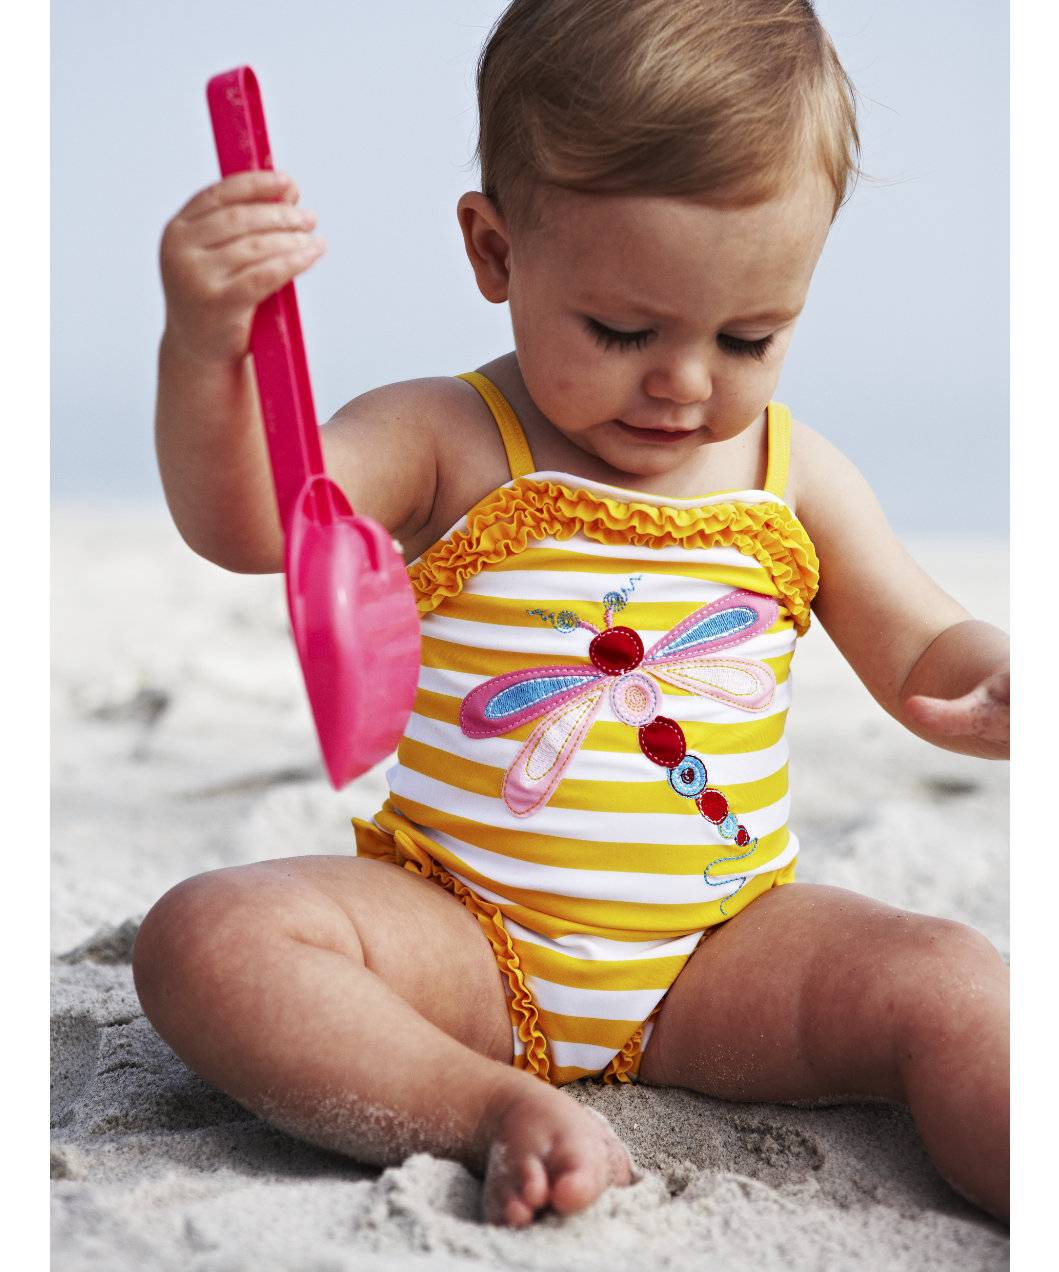 i play., Inc. is the original swim diaper manufacturer with over 20 years of experience developing and testing our unique, patented, and approved Swim Diaper. All i play. swimsuits include a reusable, absorbent swim diaper that is snug-fitting to provide ultimate, secure protection for babies and swimmers.